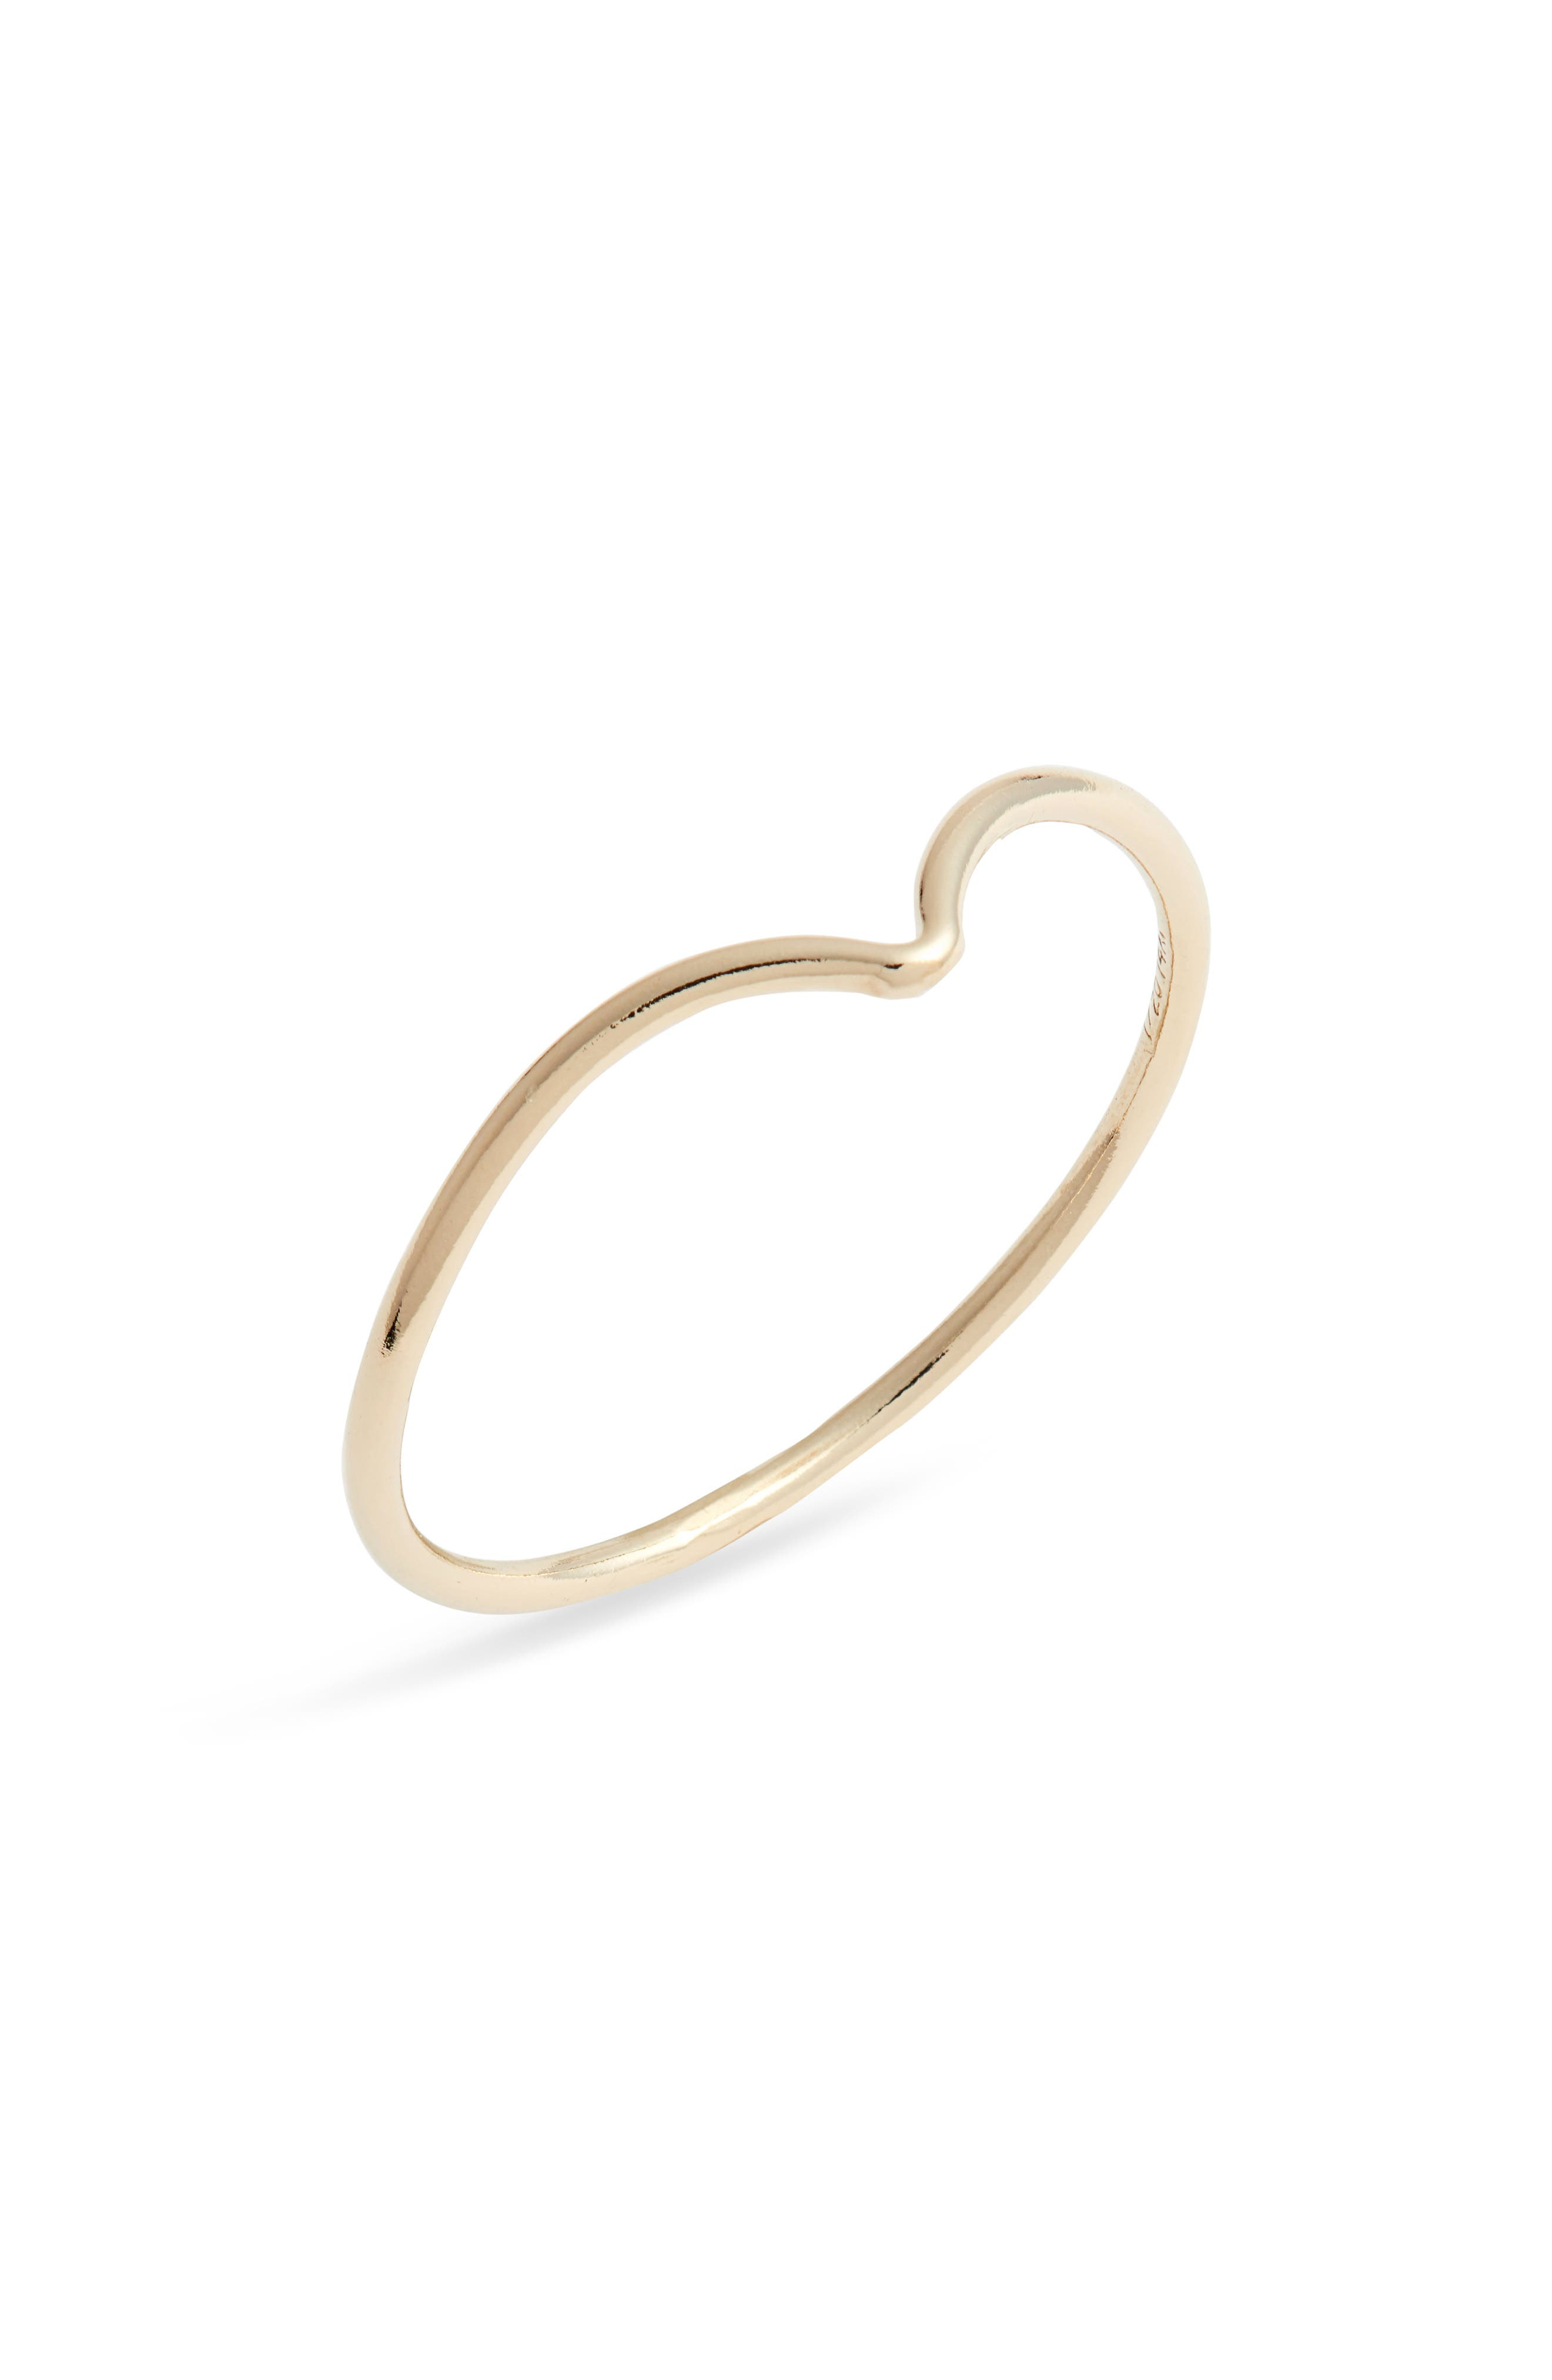 This delicate band features a gracefully bent design that\\\'s striking on its own and also nests well with other rings in your signature collection. Style Name: Set & Stones Chloe Ring. Style Number: 6057579. Available in stores.